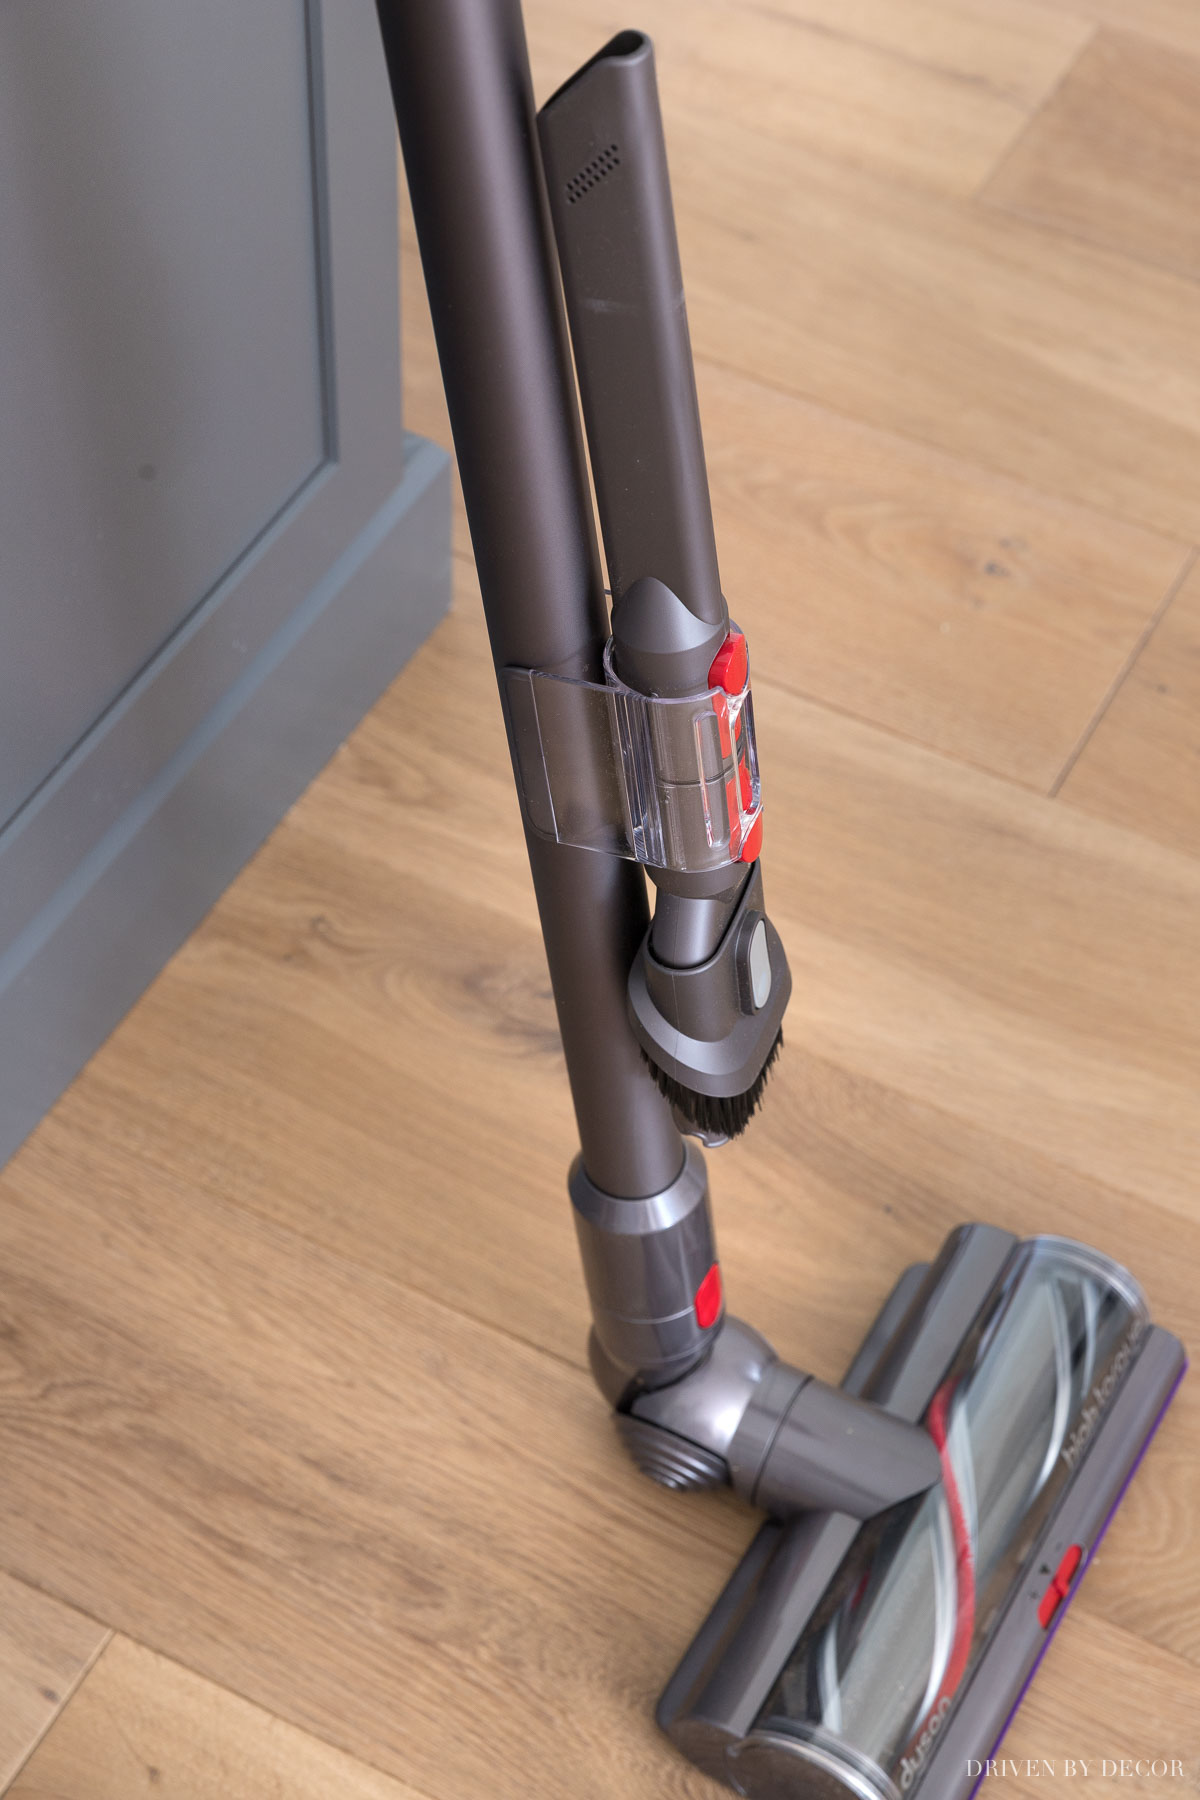 I love this feature of having these two attachments where they're easy to grab on my Dyson cordless vacuum